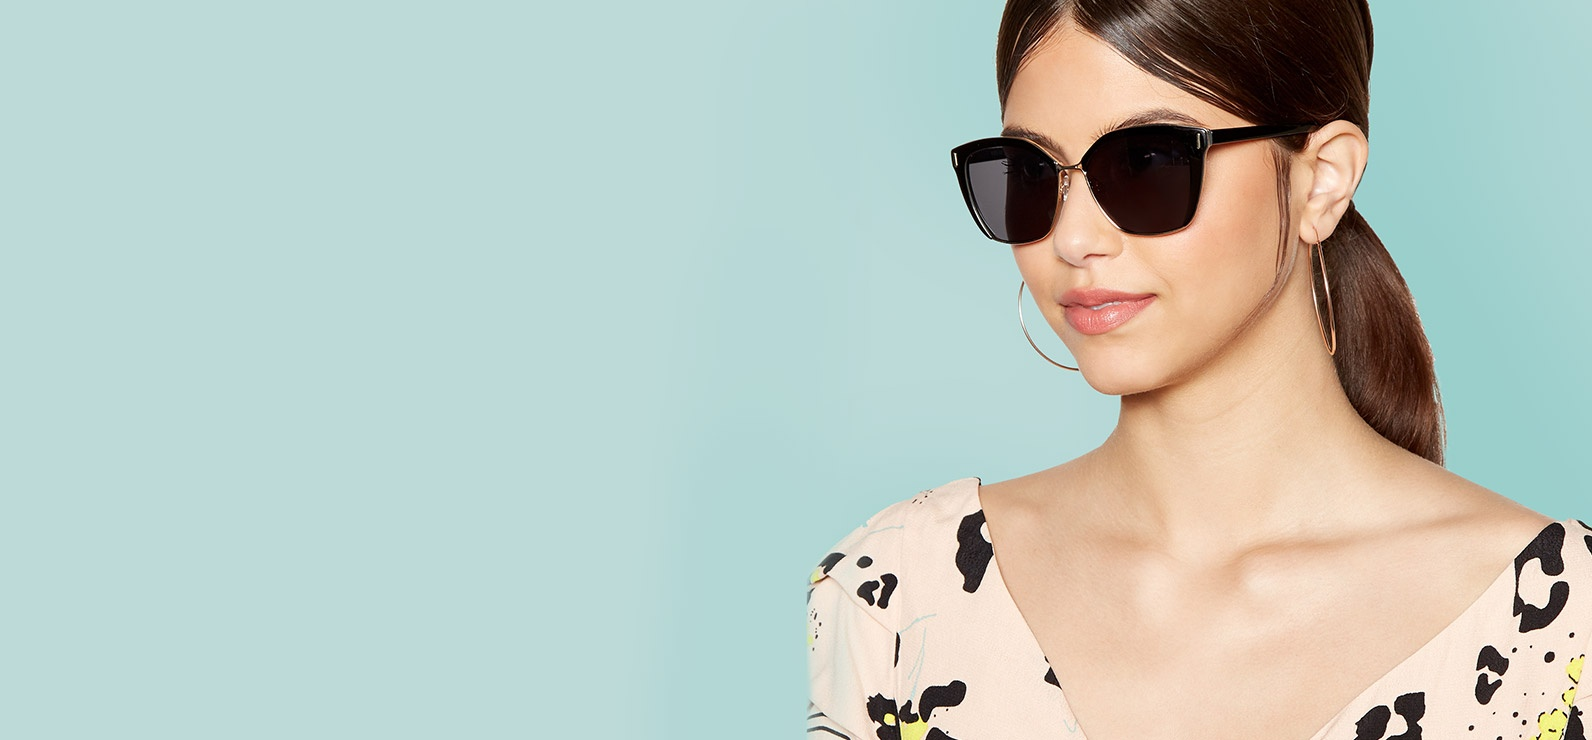 fcb76a5e25de Women's Sunglasses | Debenhams